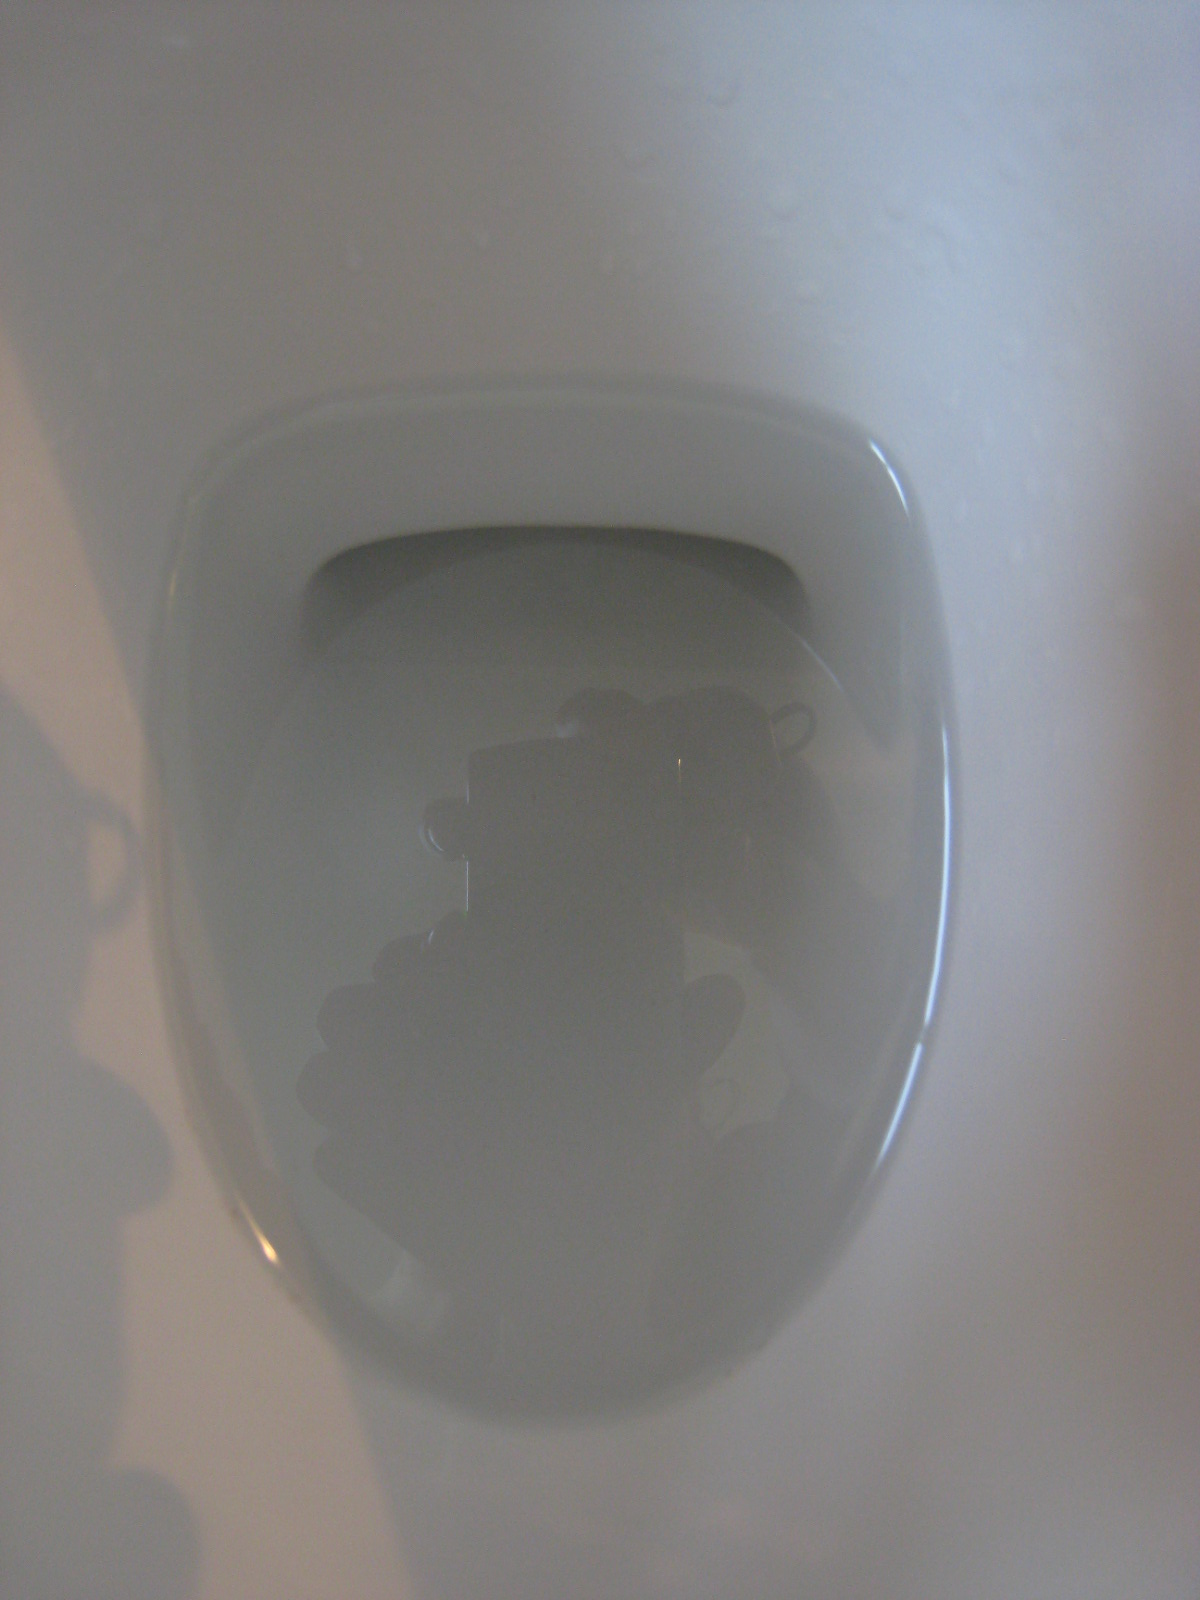 Check Out What Lysol Toilet Bowl Cleaner Did To My Toilet